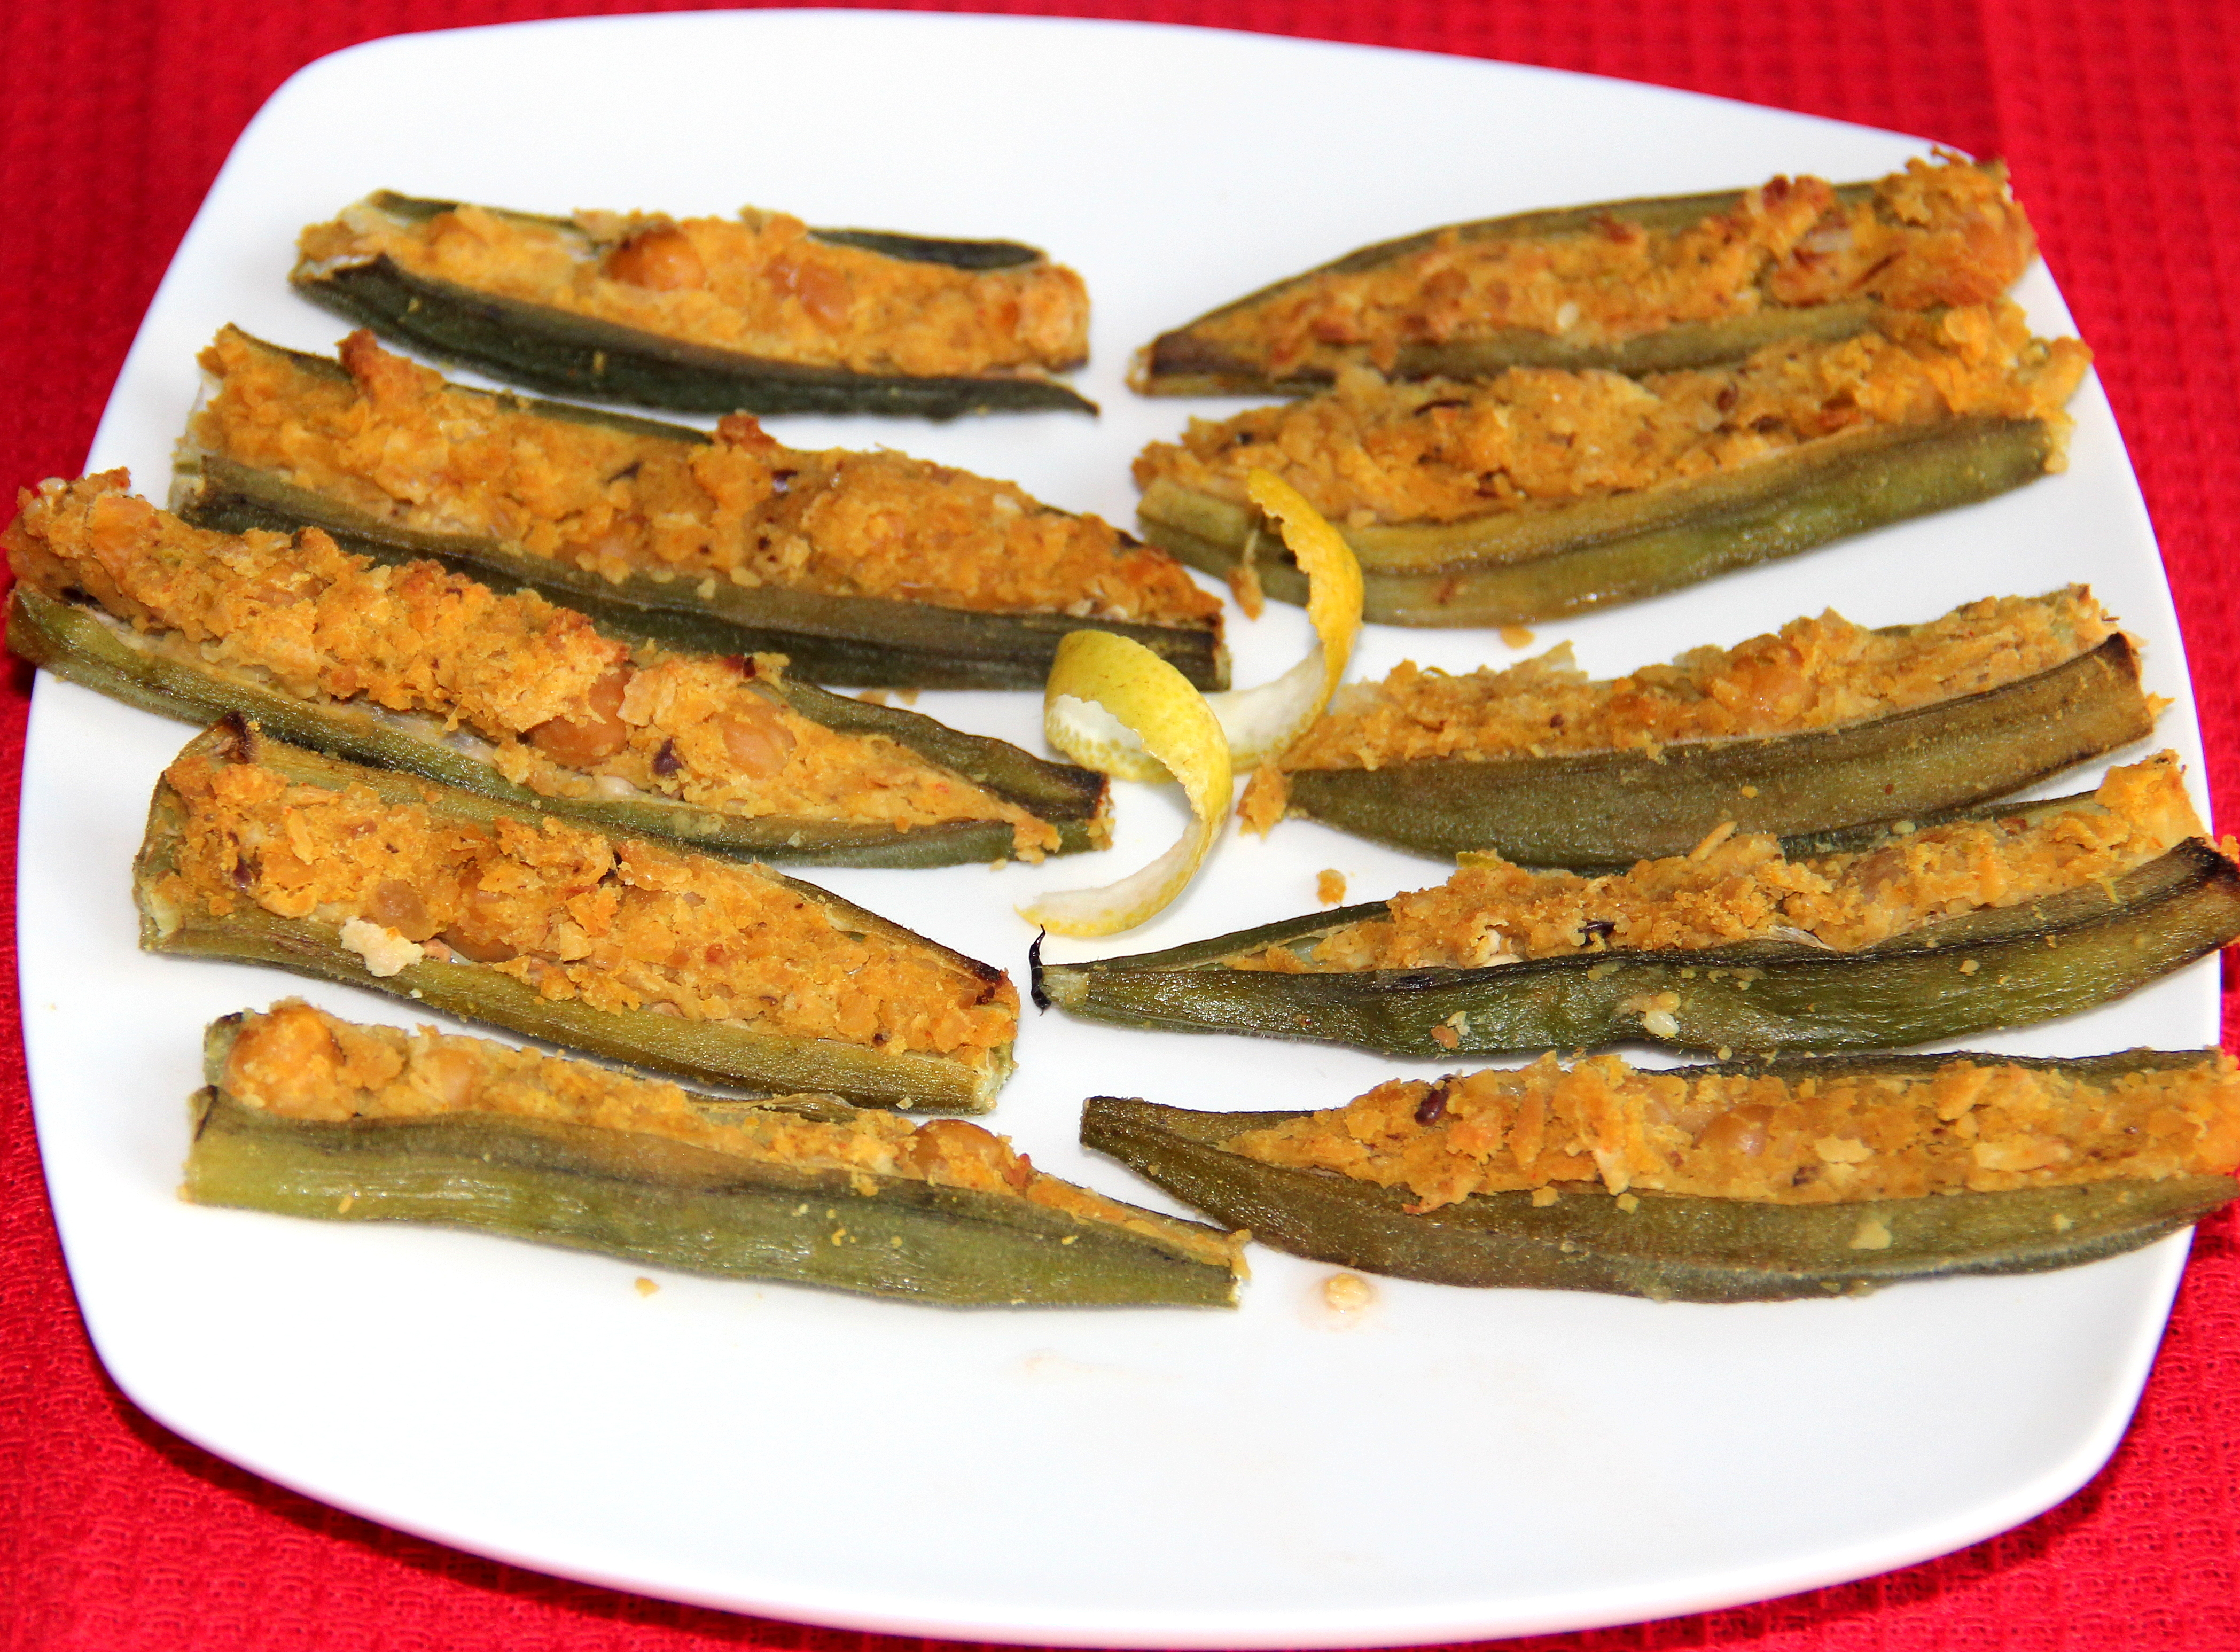 Okra stuffed with Chickpeas – 2 methods